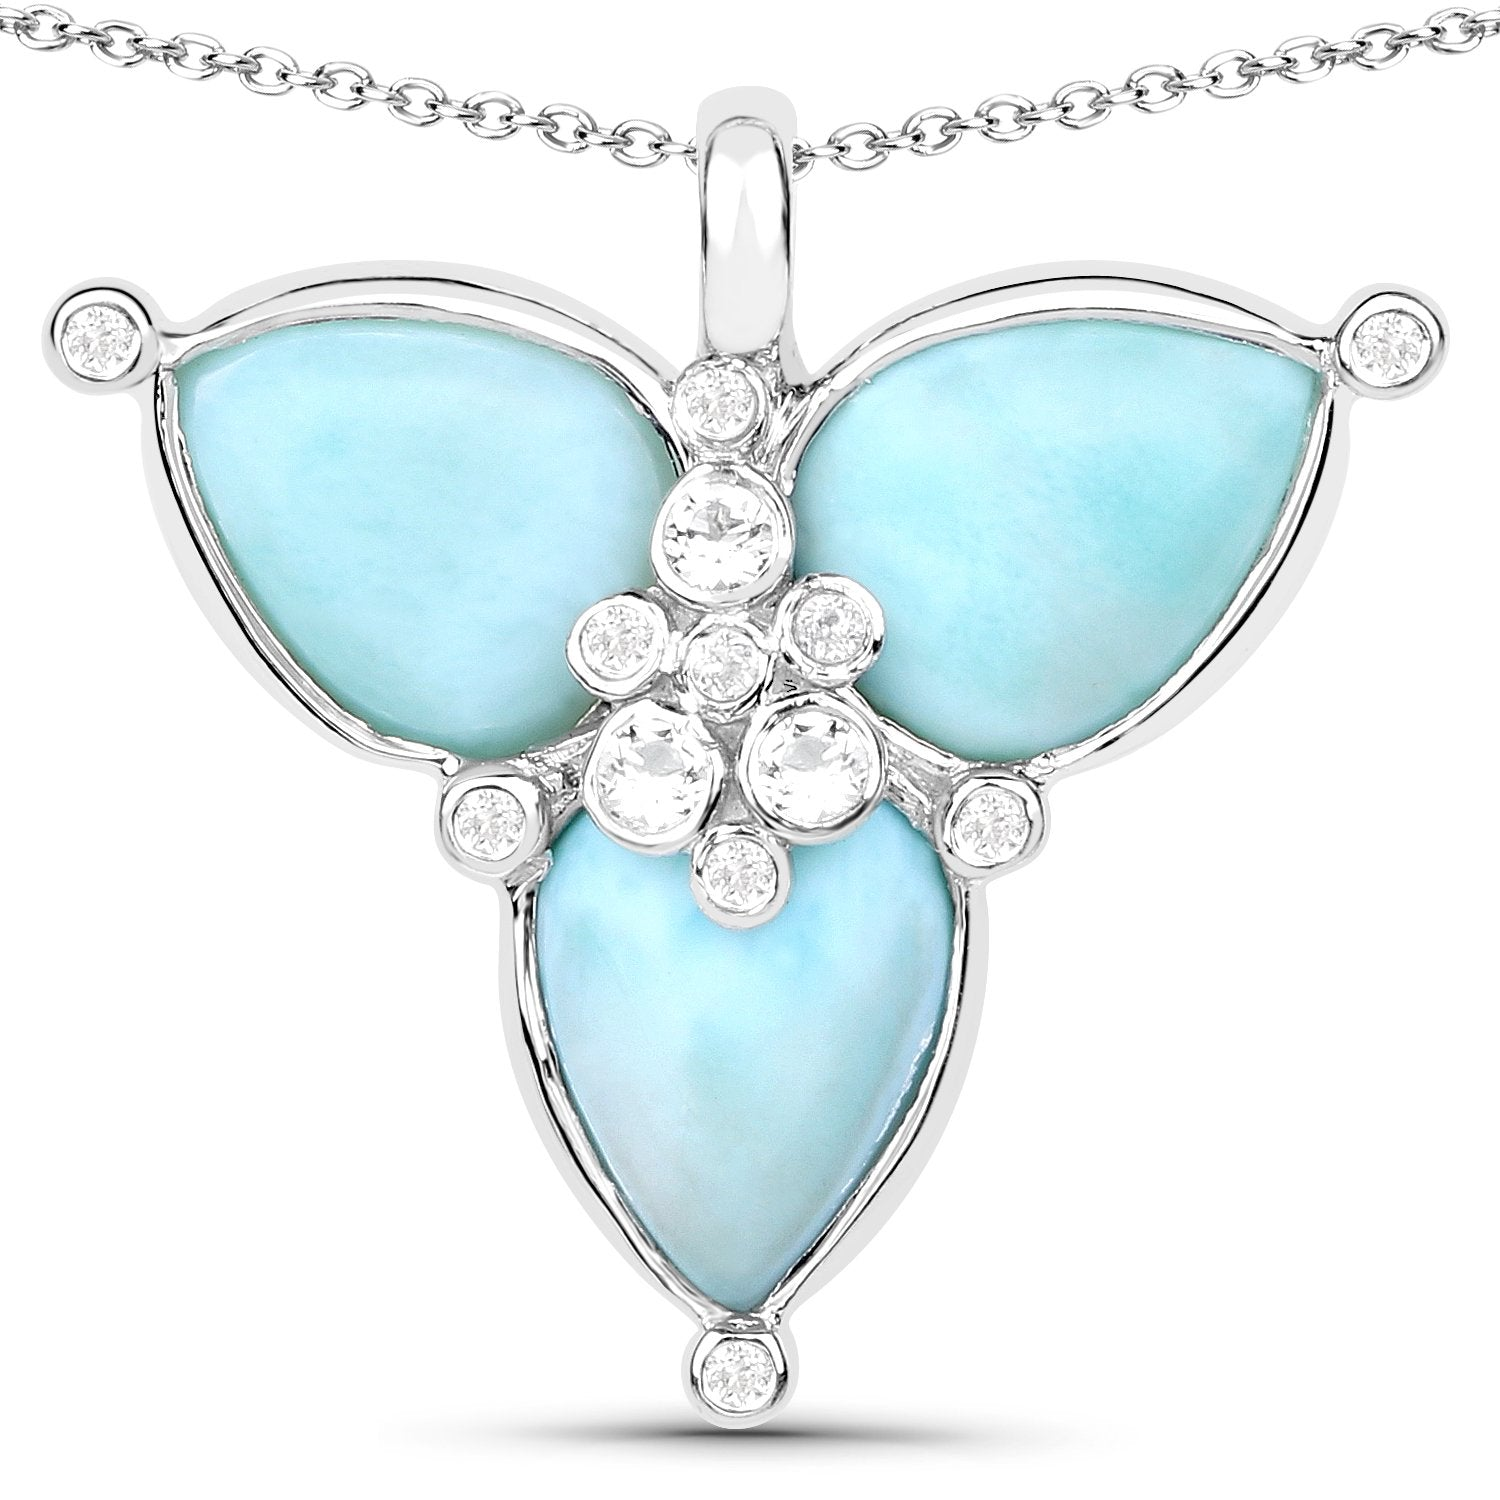 LoveHuang 3.48 Carats Genuine Larimar and White Topaz Petal Pendant Solid .925 Sterling Silver With Rhodium Plating, 18Inch Chain